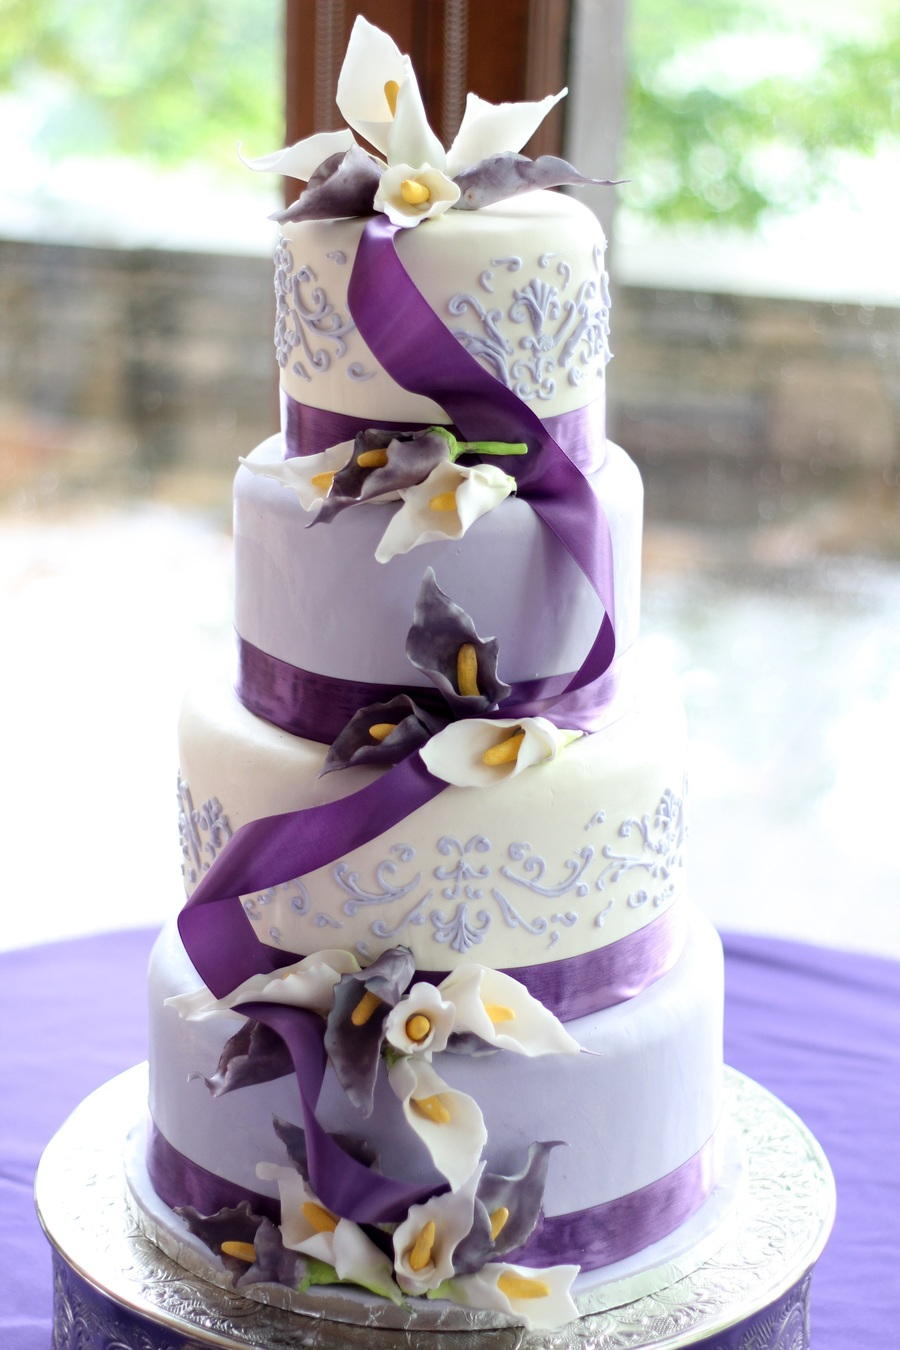 Lavender And White Sugar Calla Lily Wedding Cake   CakeCentral com Lavender And White Sugar Calla Lily Wedding Cake on Cake Central